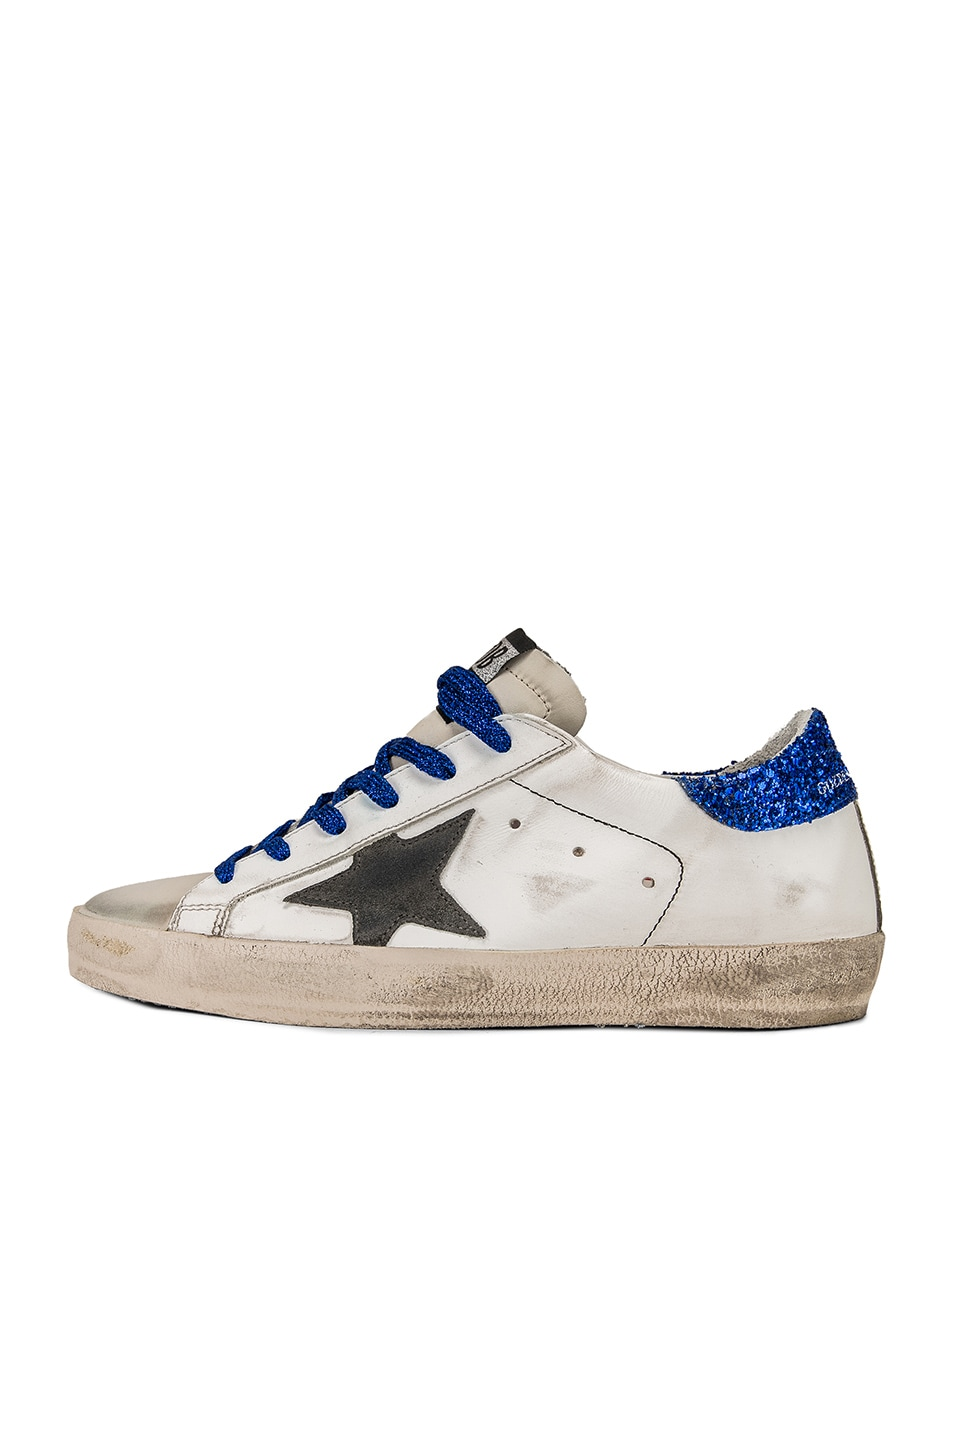 Image 8 of Golden Goose Bluette Laces Superstar Sneakers in White American Flag